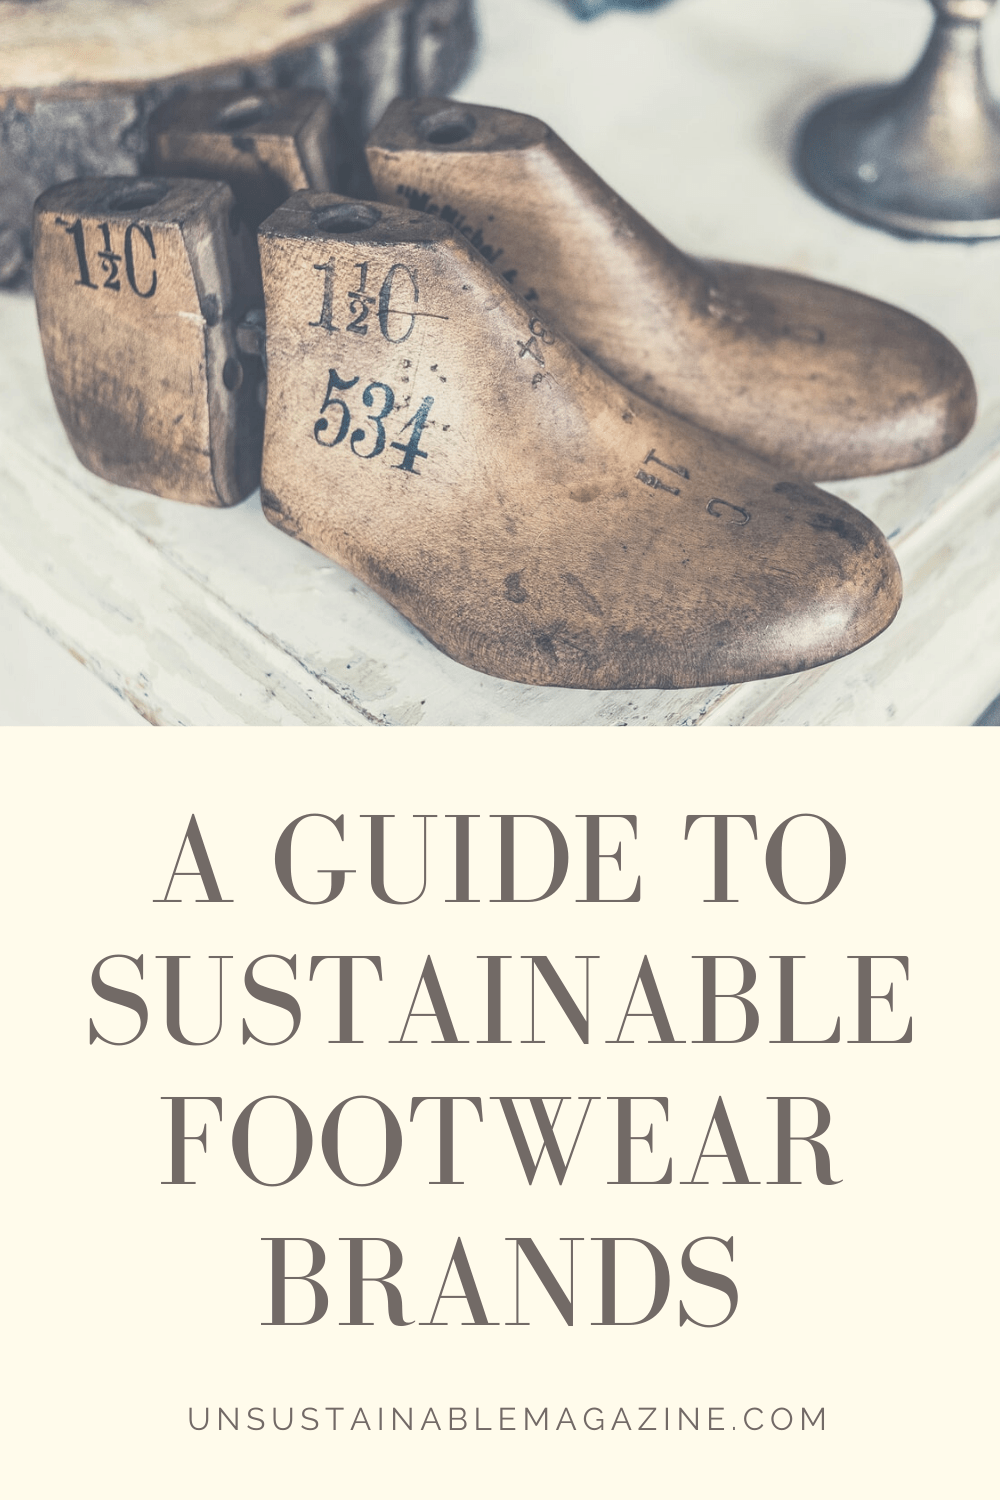 A guide to sustainable footwear brands